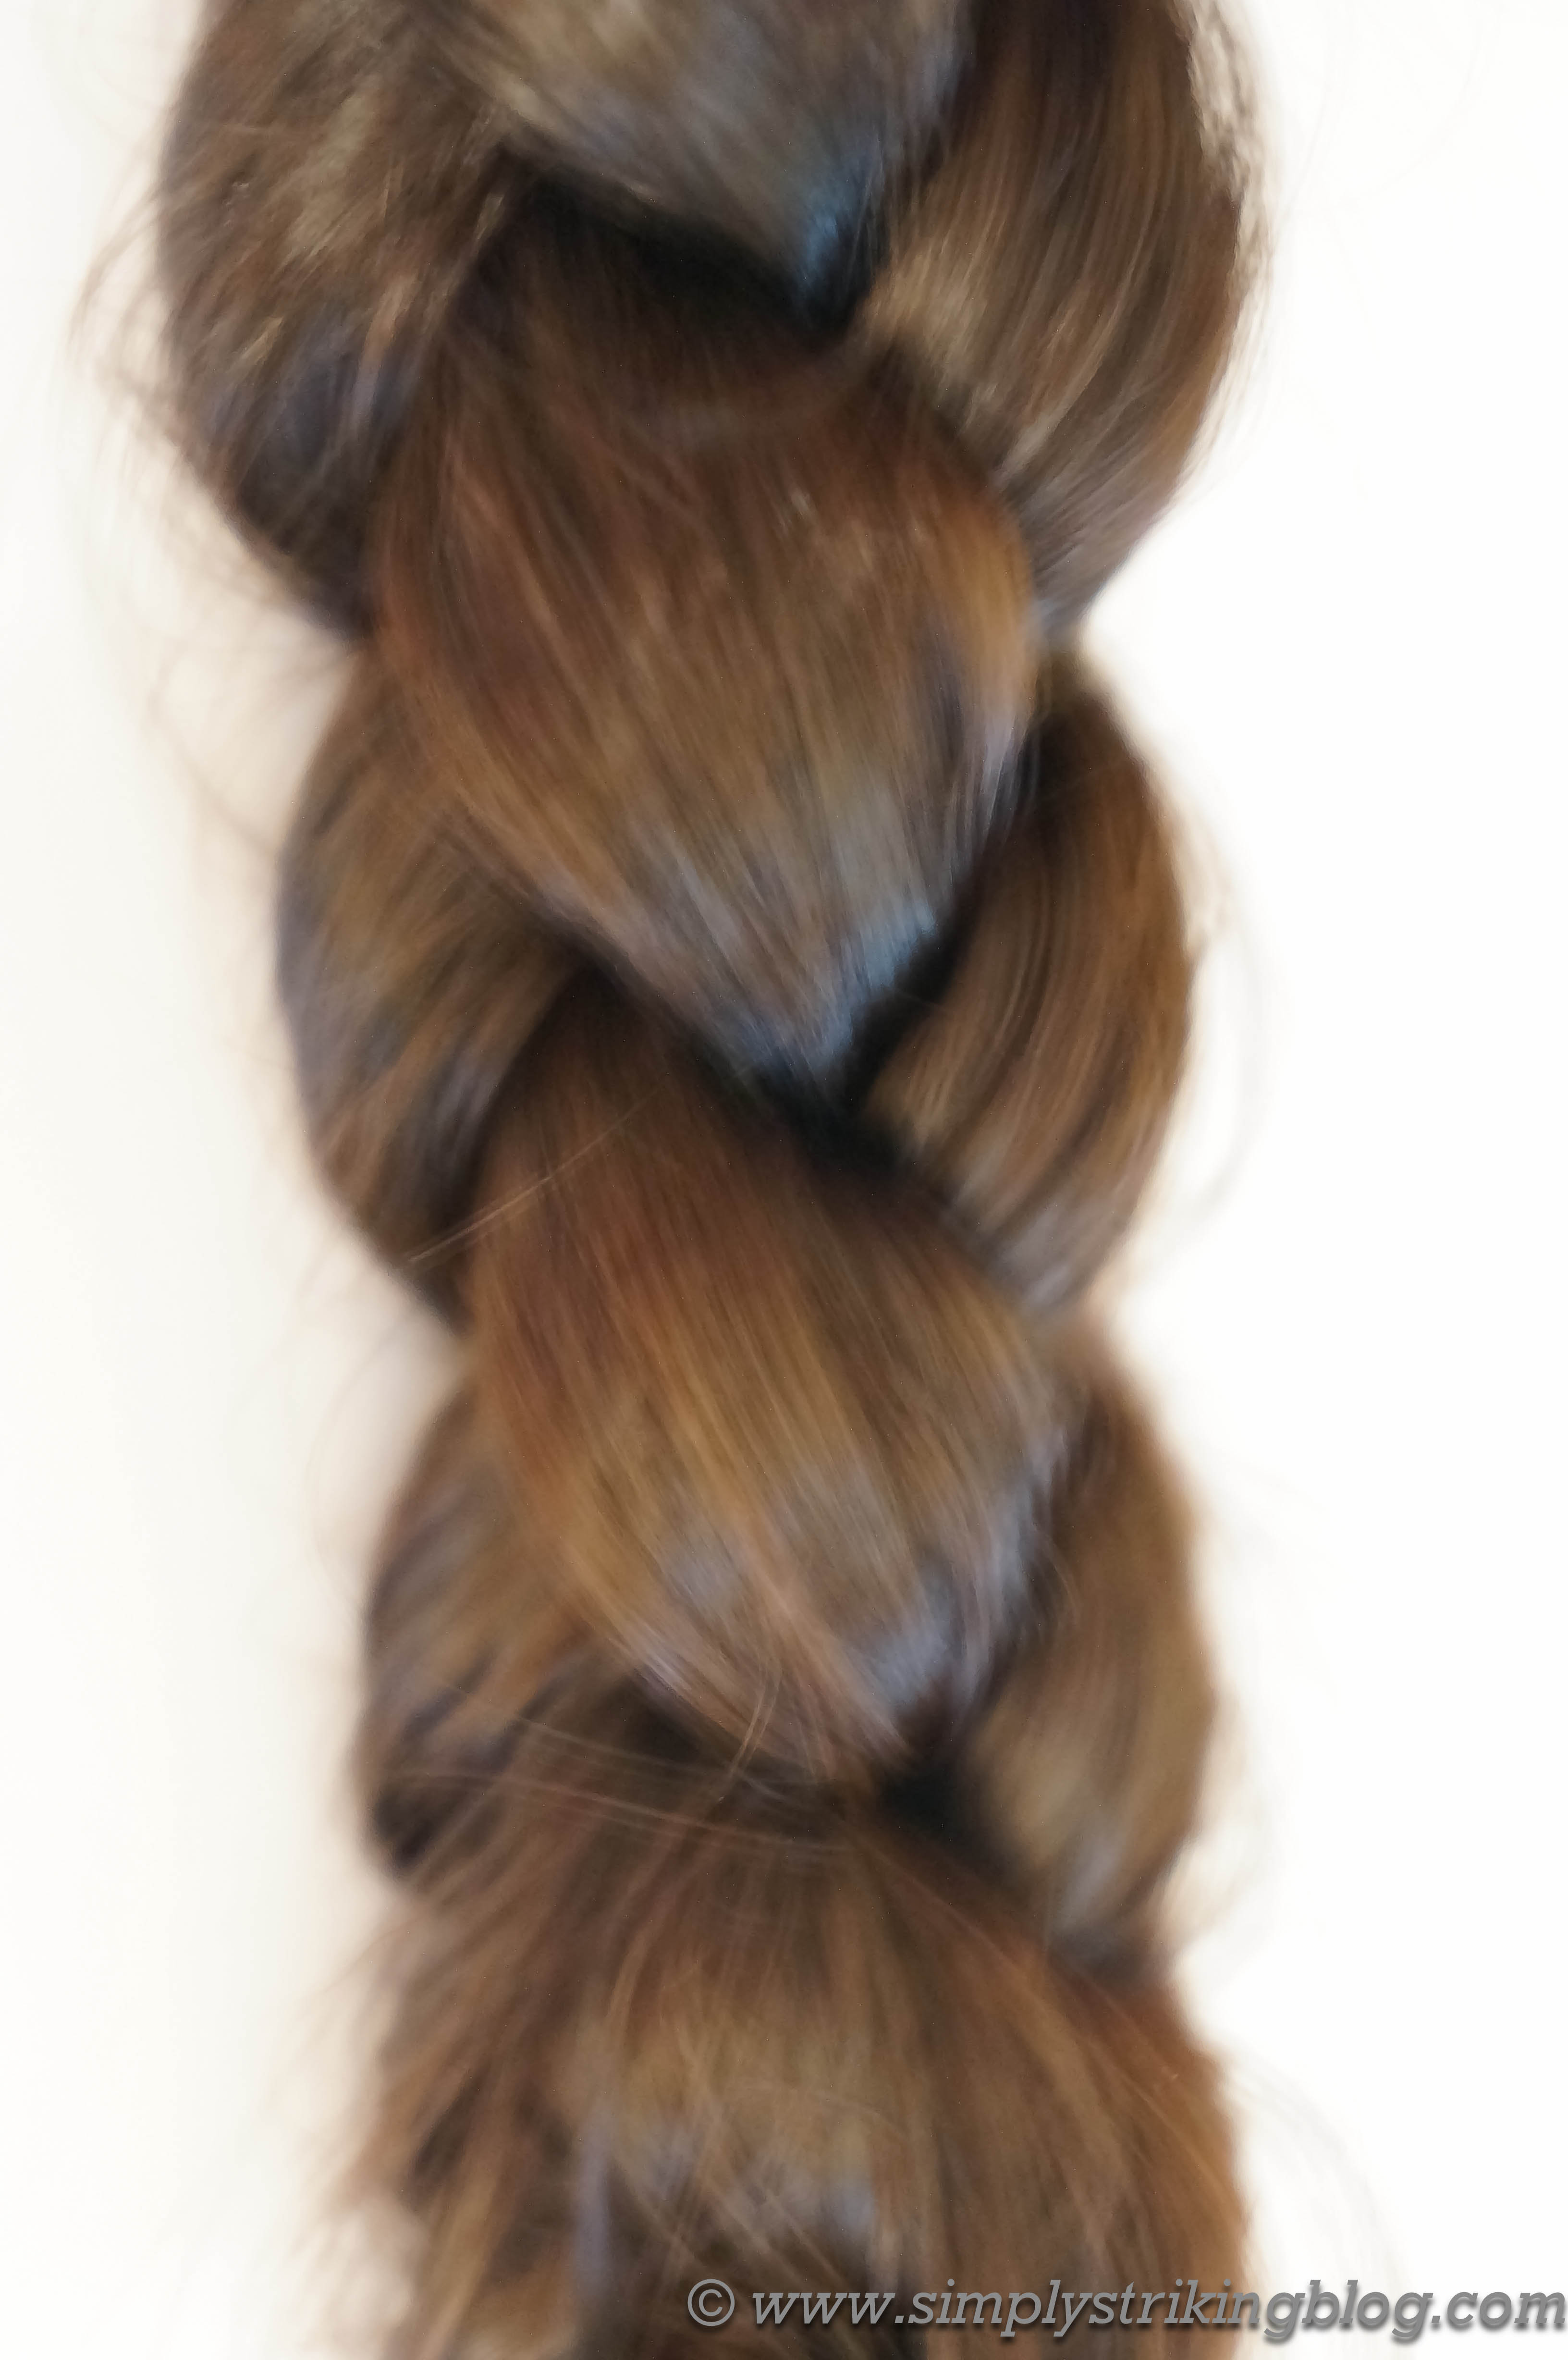 Tutorial How To Make a Square Braid  SimplyStriking